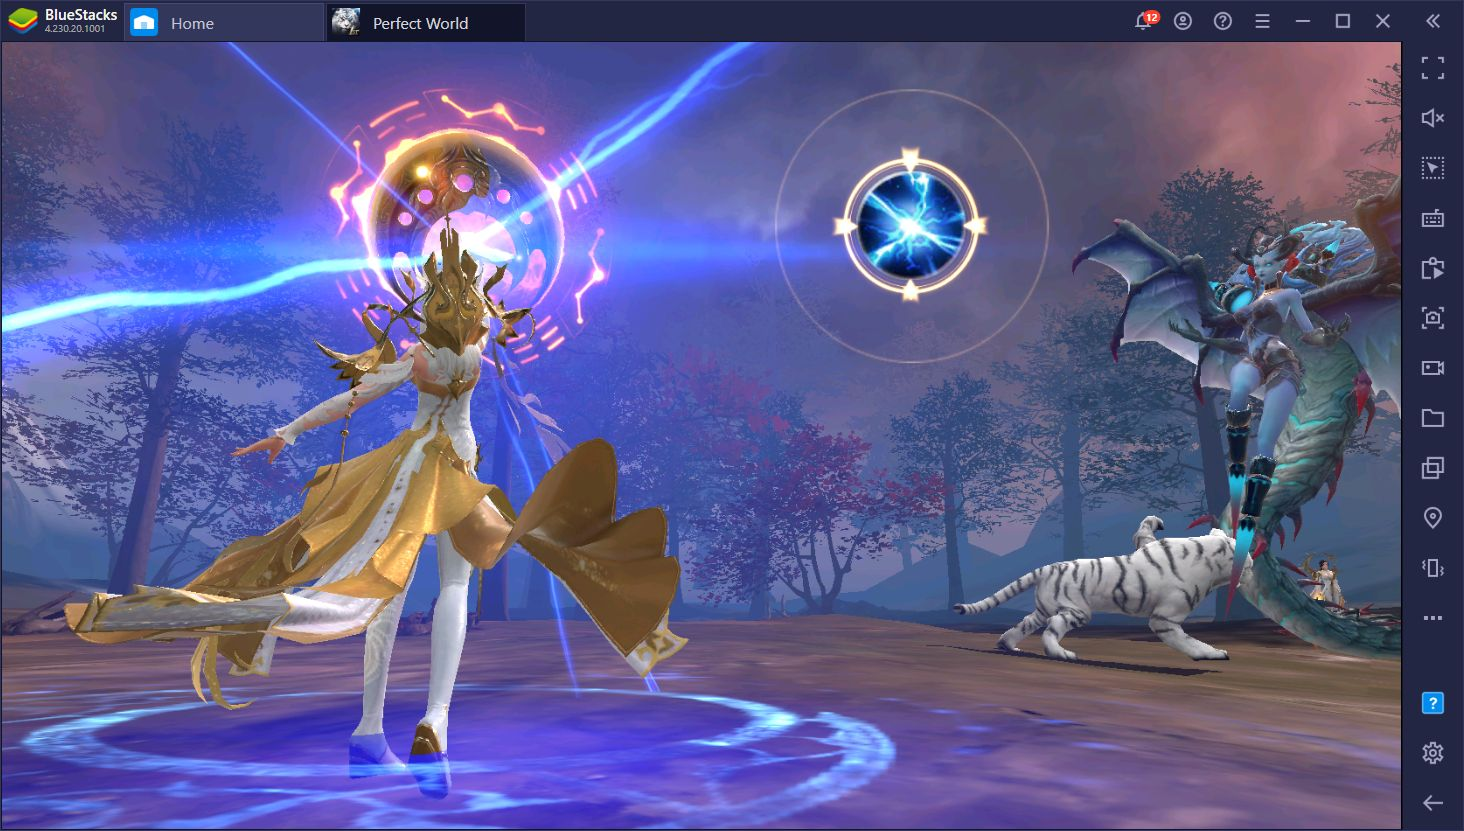 Perfect World Mobile – How to Enjoy the Popular Mobile MMORPG on PC With BlueStacks